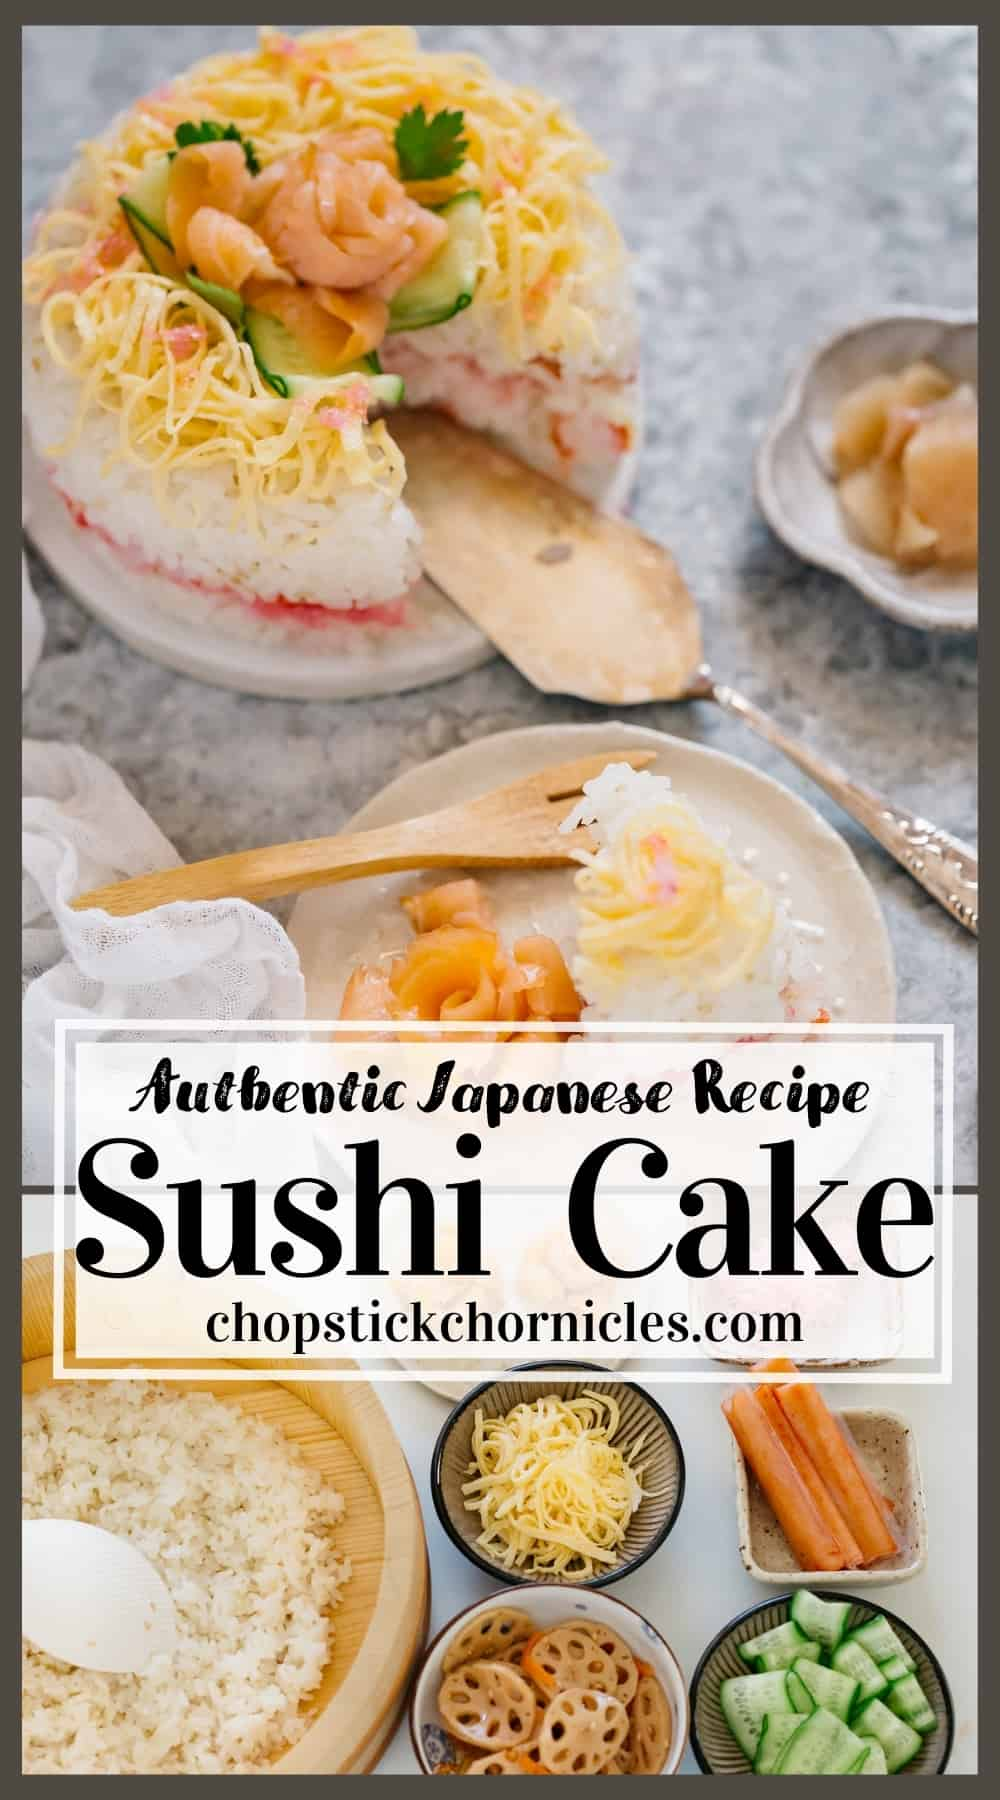 sushi cake image collage with text overlay for pinterest